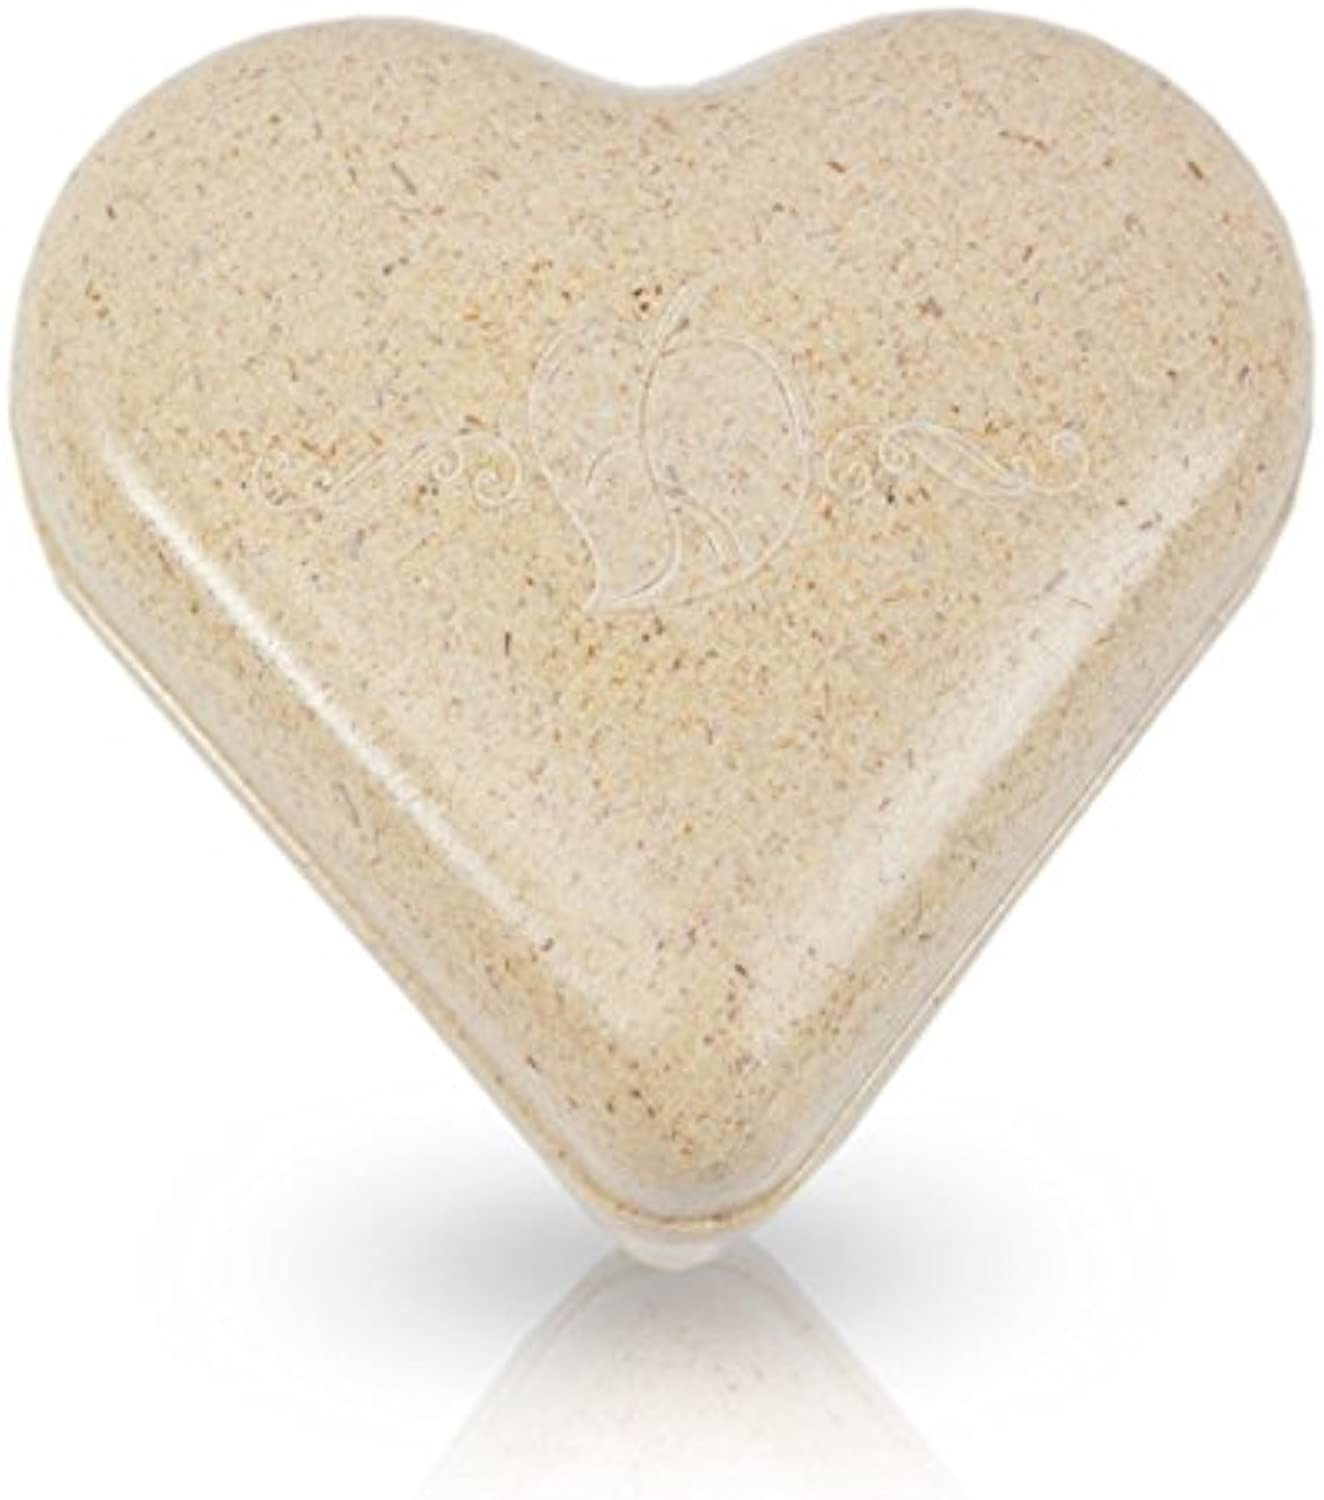 Heart Recycled Material Pet Urn  Medium  Holds Up to 55 Cubic Inches of Ashes  Brown Biodegradable Pod